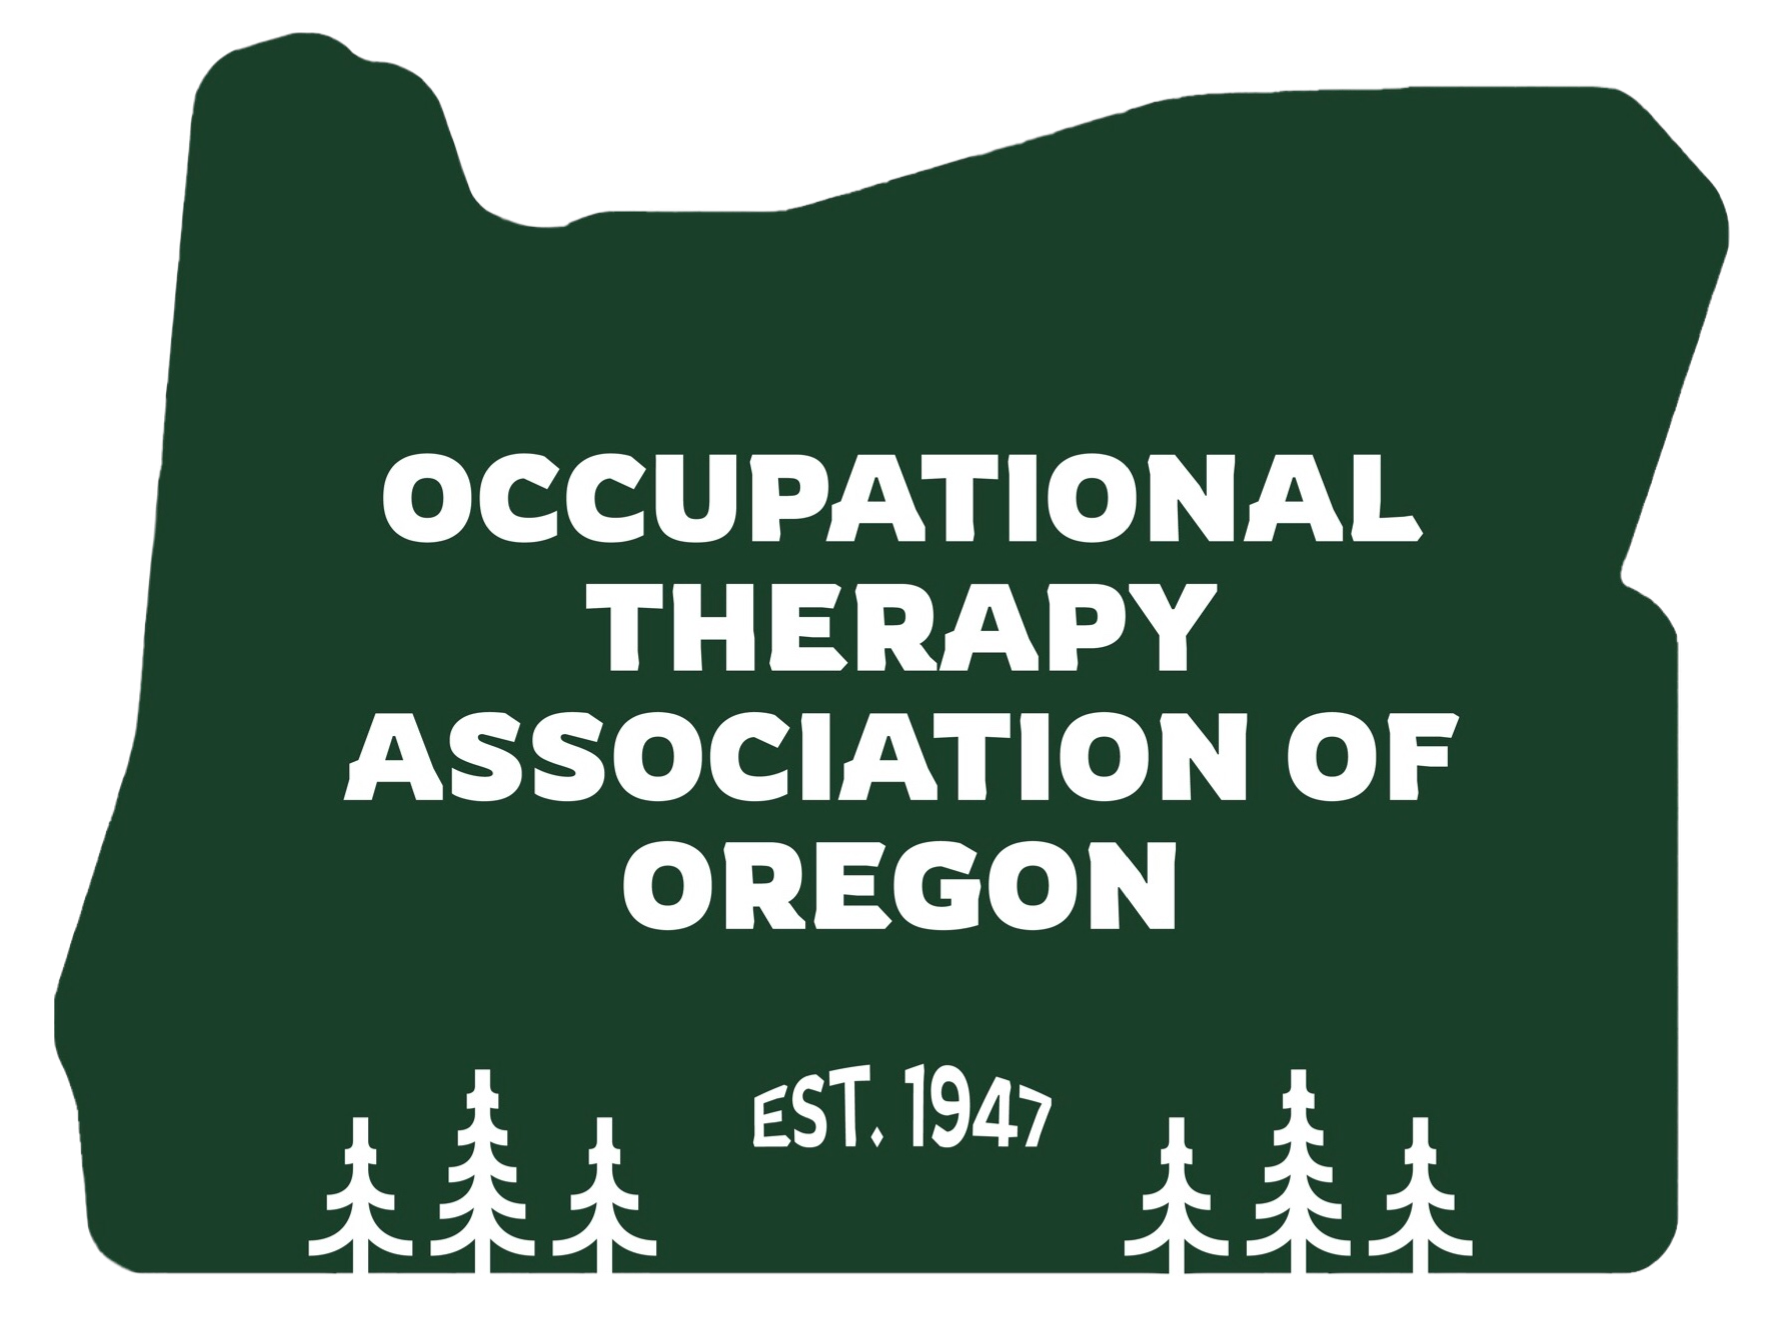 Occupational Therapy Association of Oregon